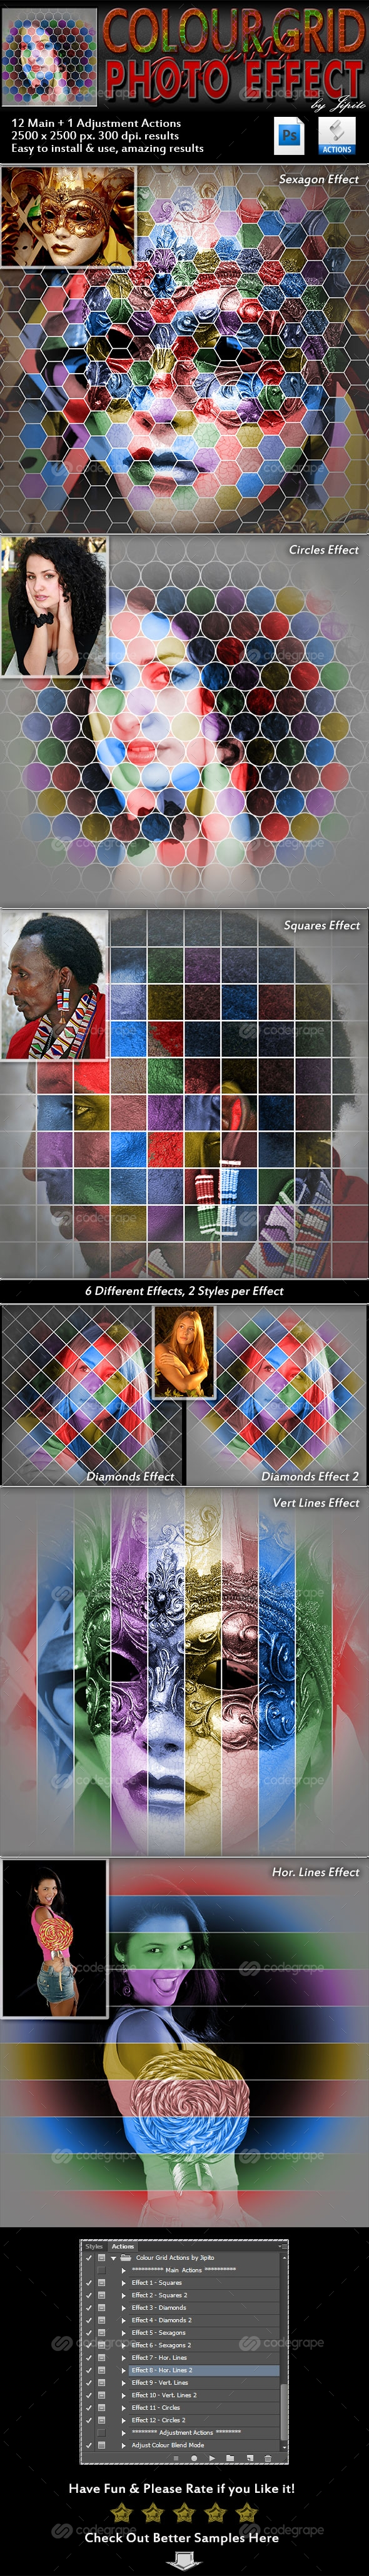 Colour Grid Photo Effect Actions